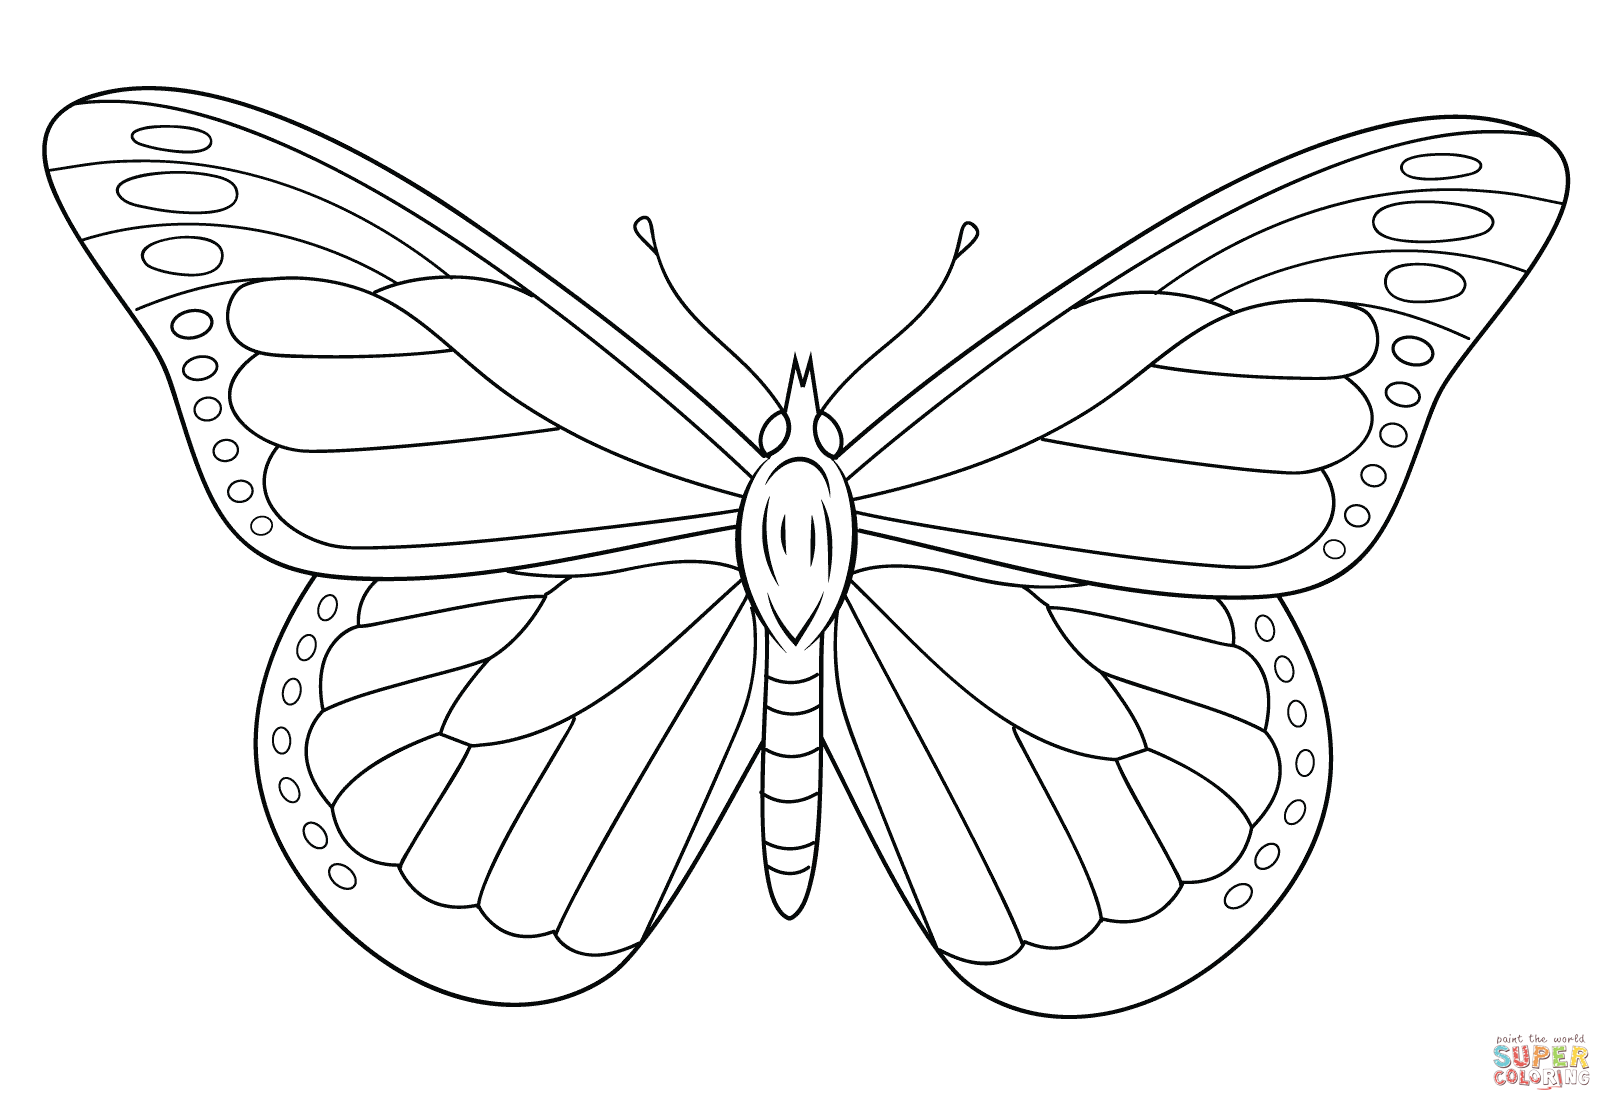 Monarch butterfly coloring pages download and print for free